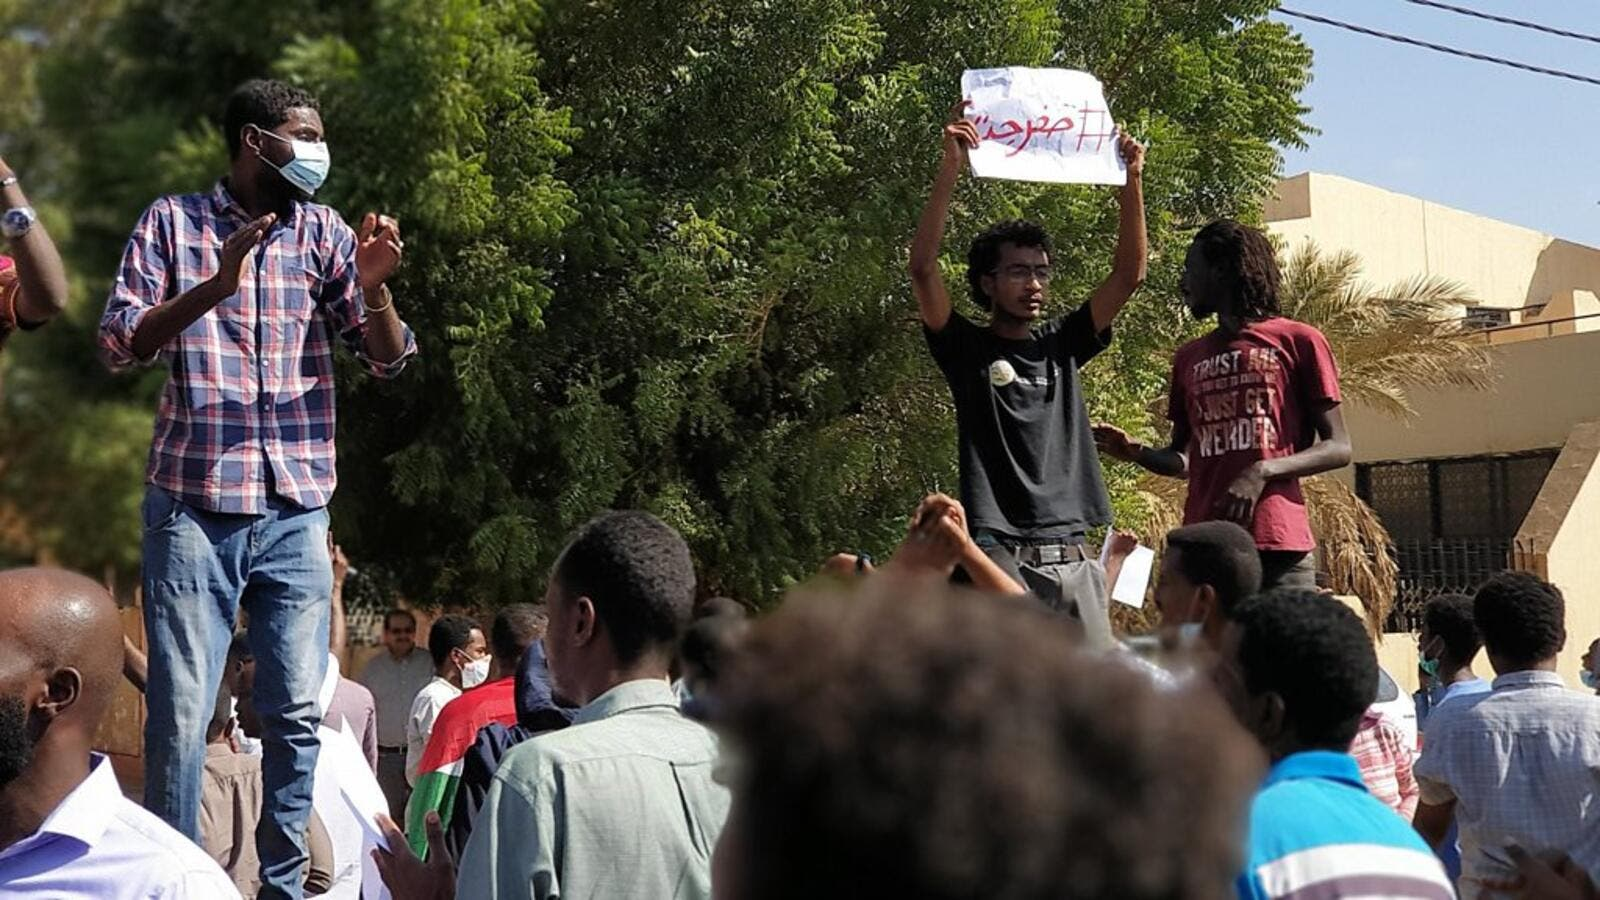 Protests in Sudan leave at least 19 dead, 406 injured. (Twitter)